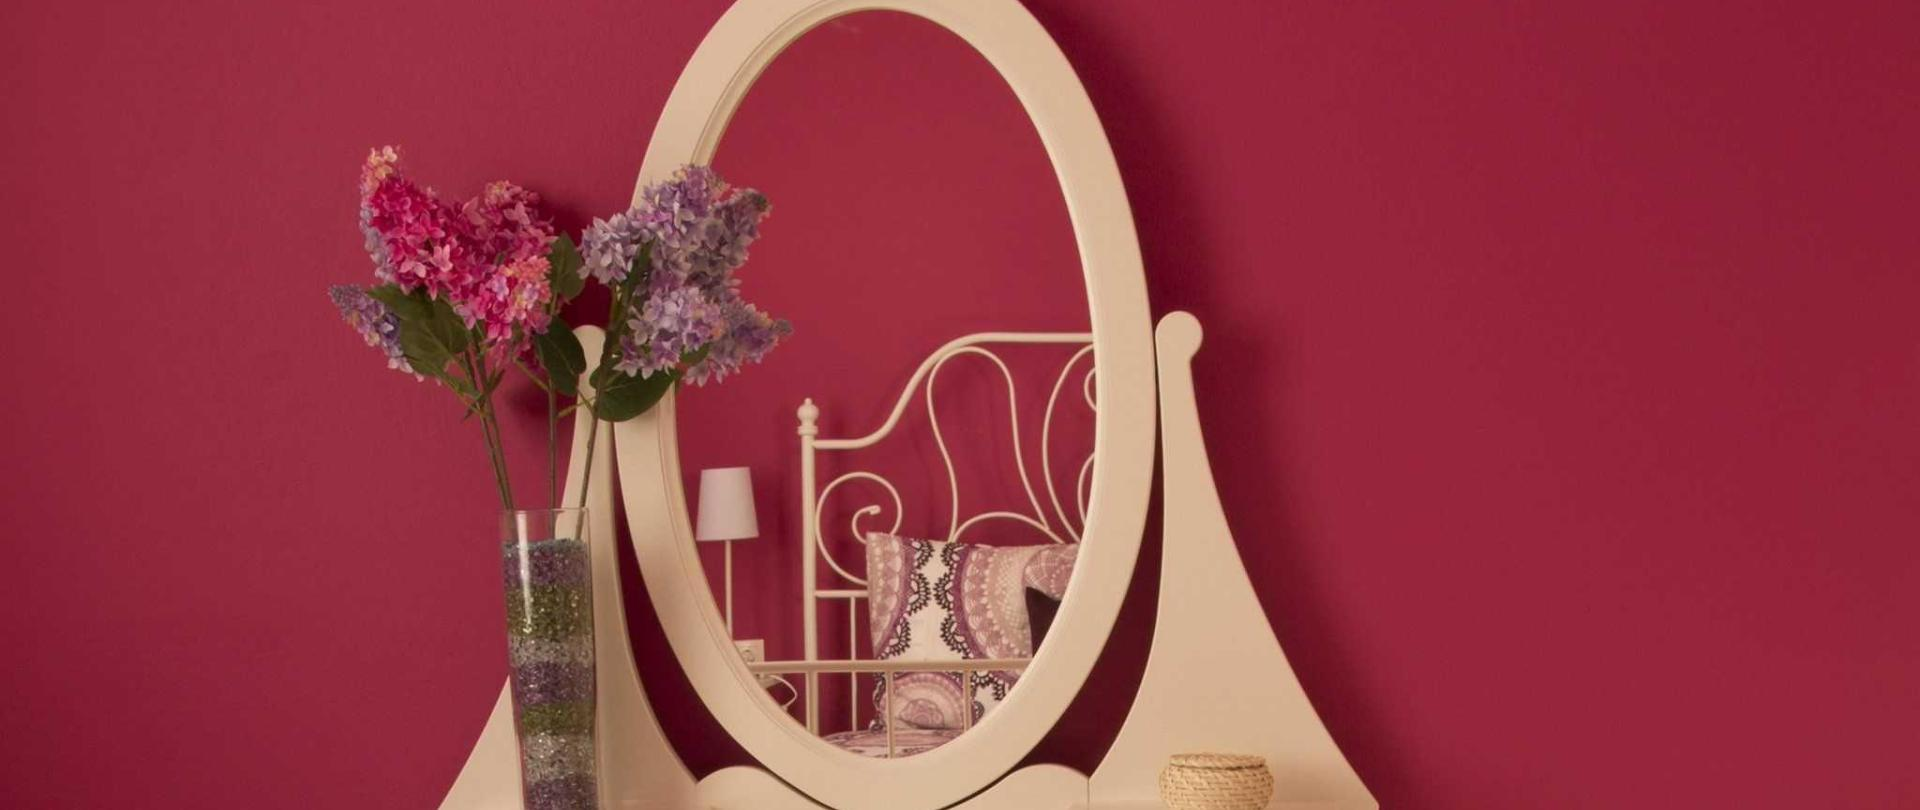 Orchid Flat, Bedroom Mirror